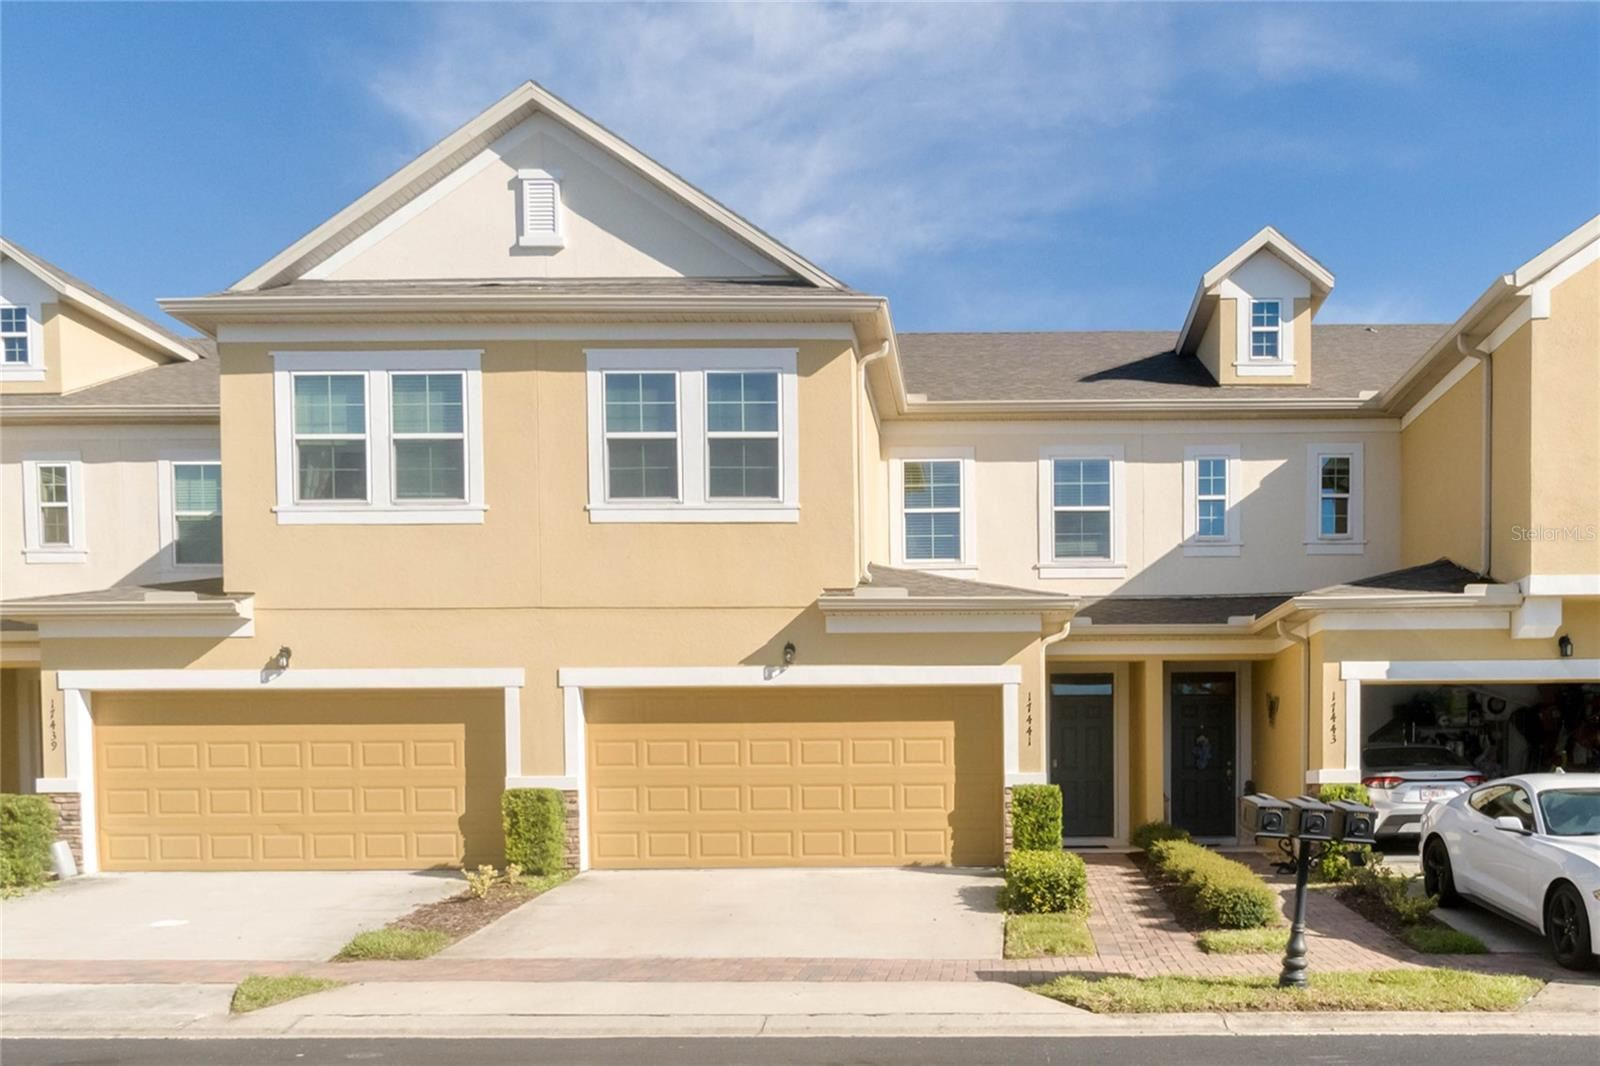 17441 CHATEAU PINE WAY, Clermont, FL 34711 - MLS#: O5977747